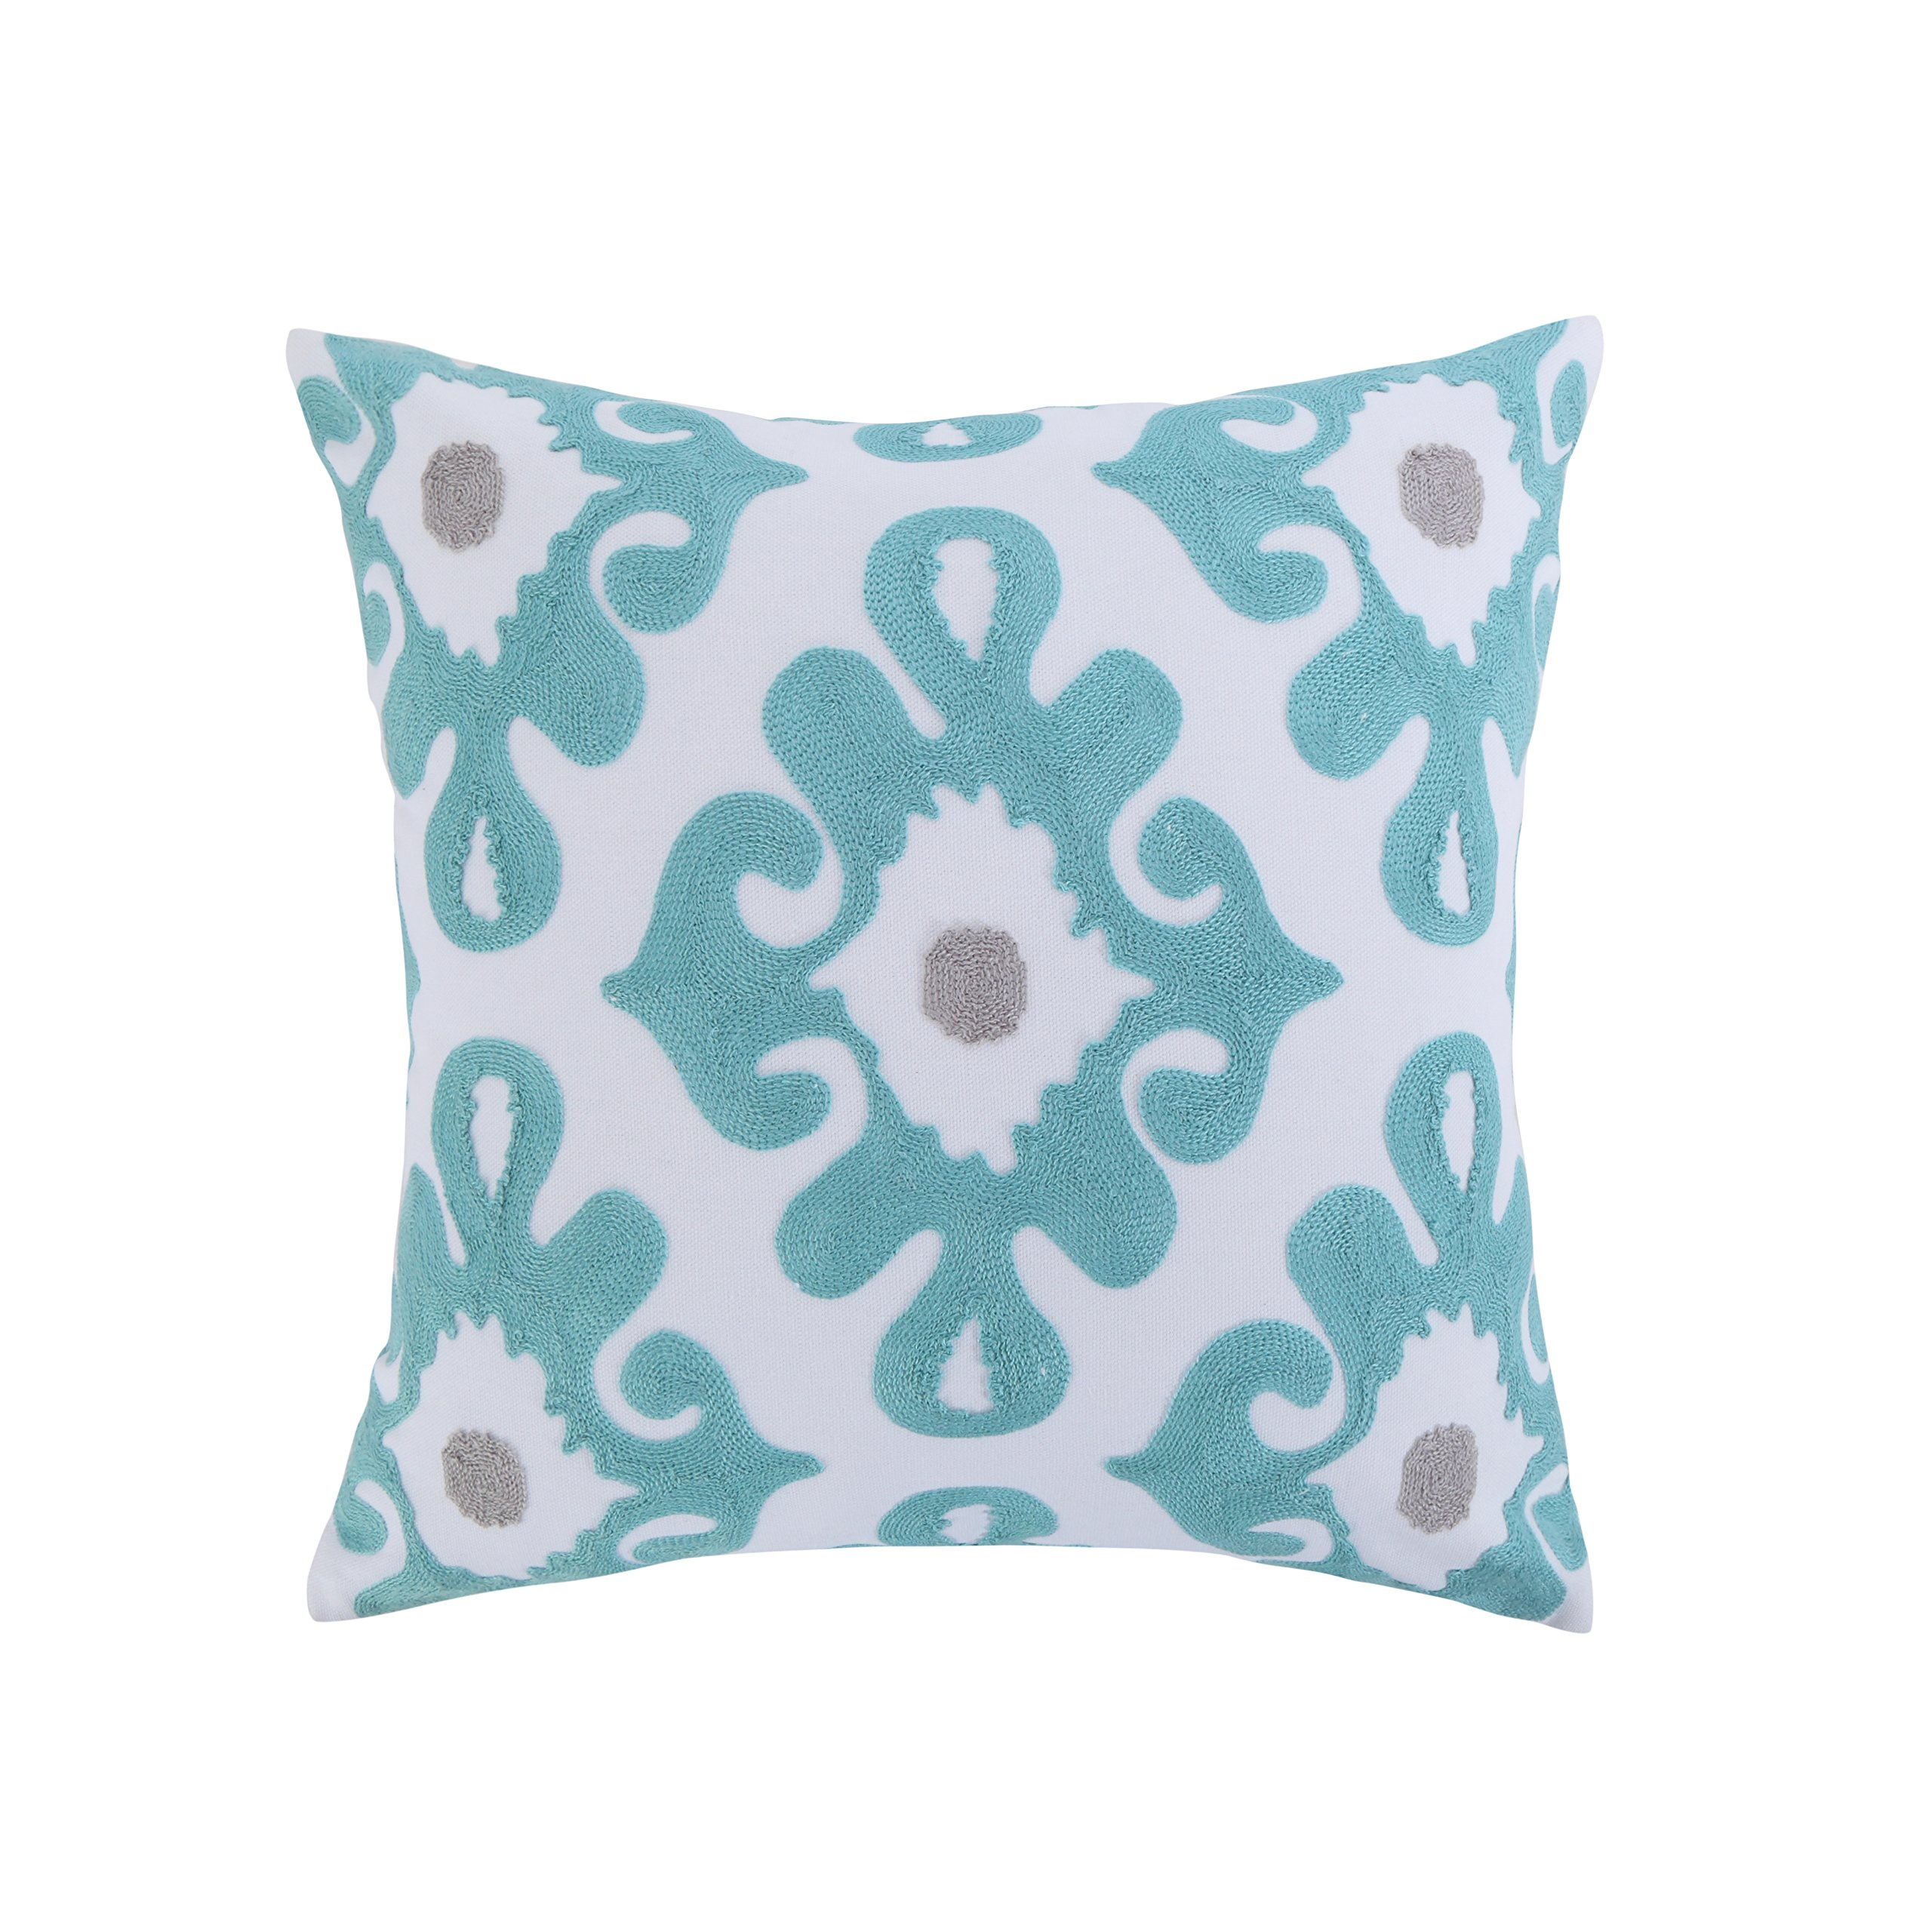 Levtex Spa Pintuck Embroidered Teal Grey Pillow